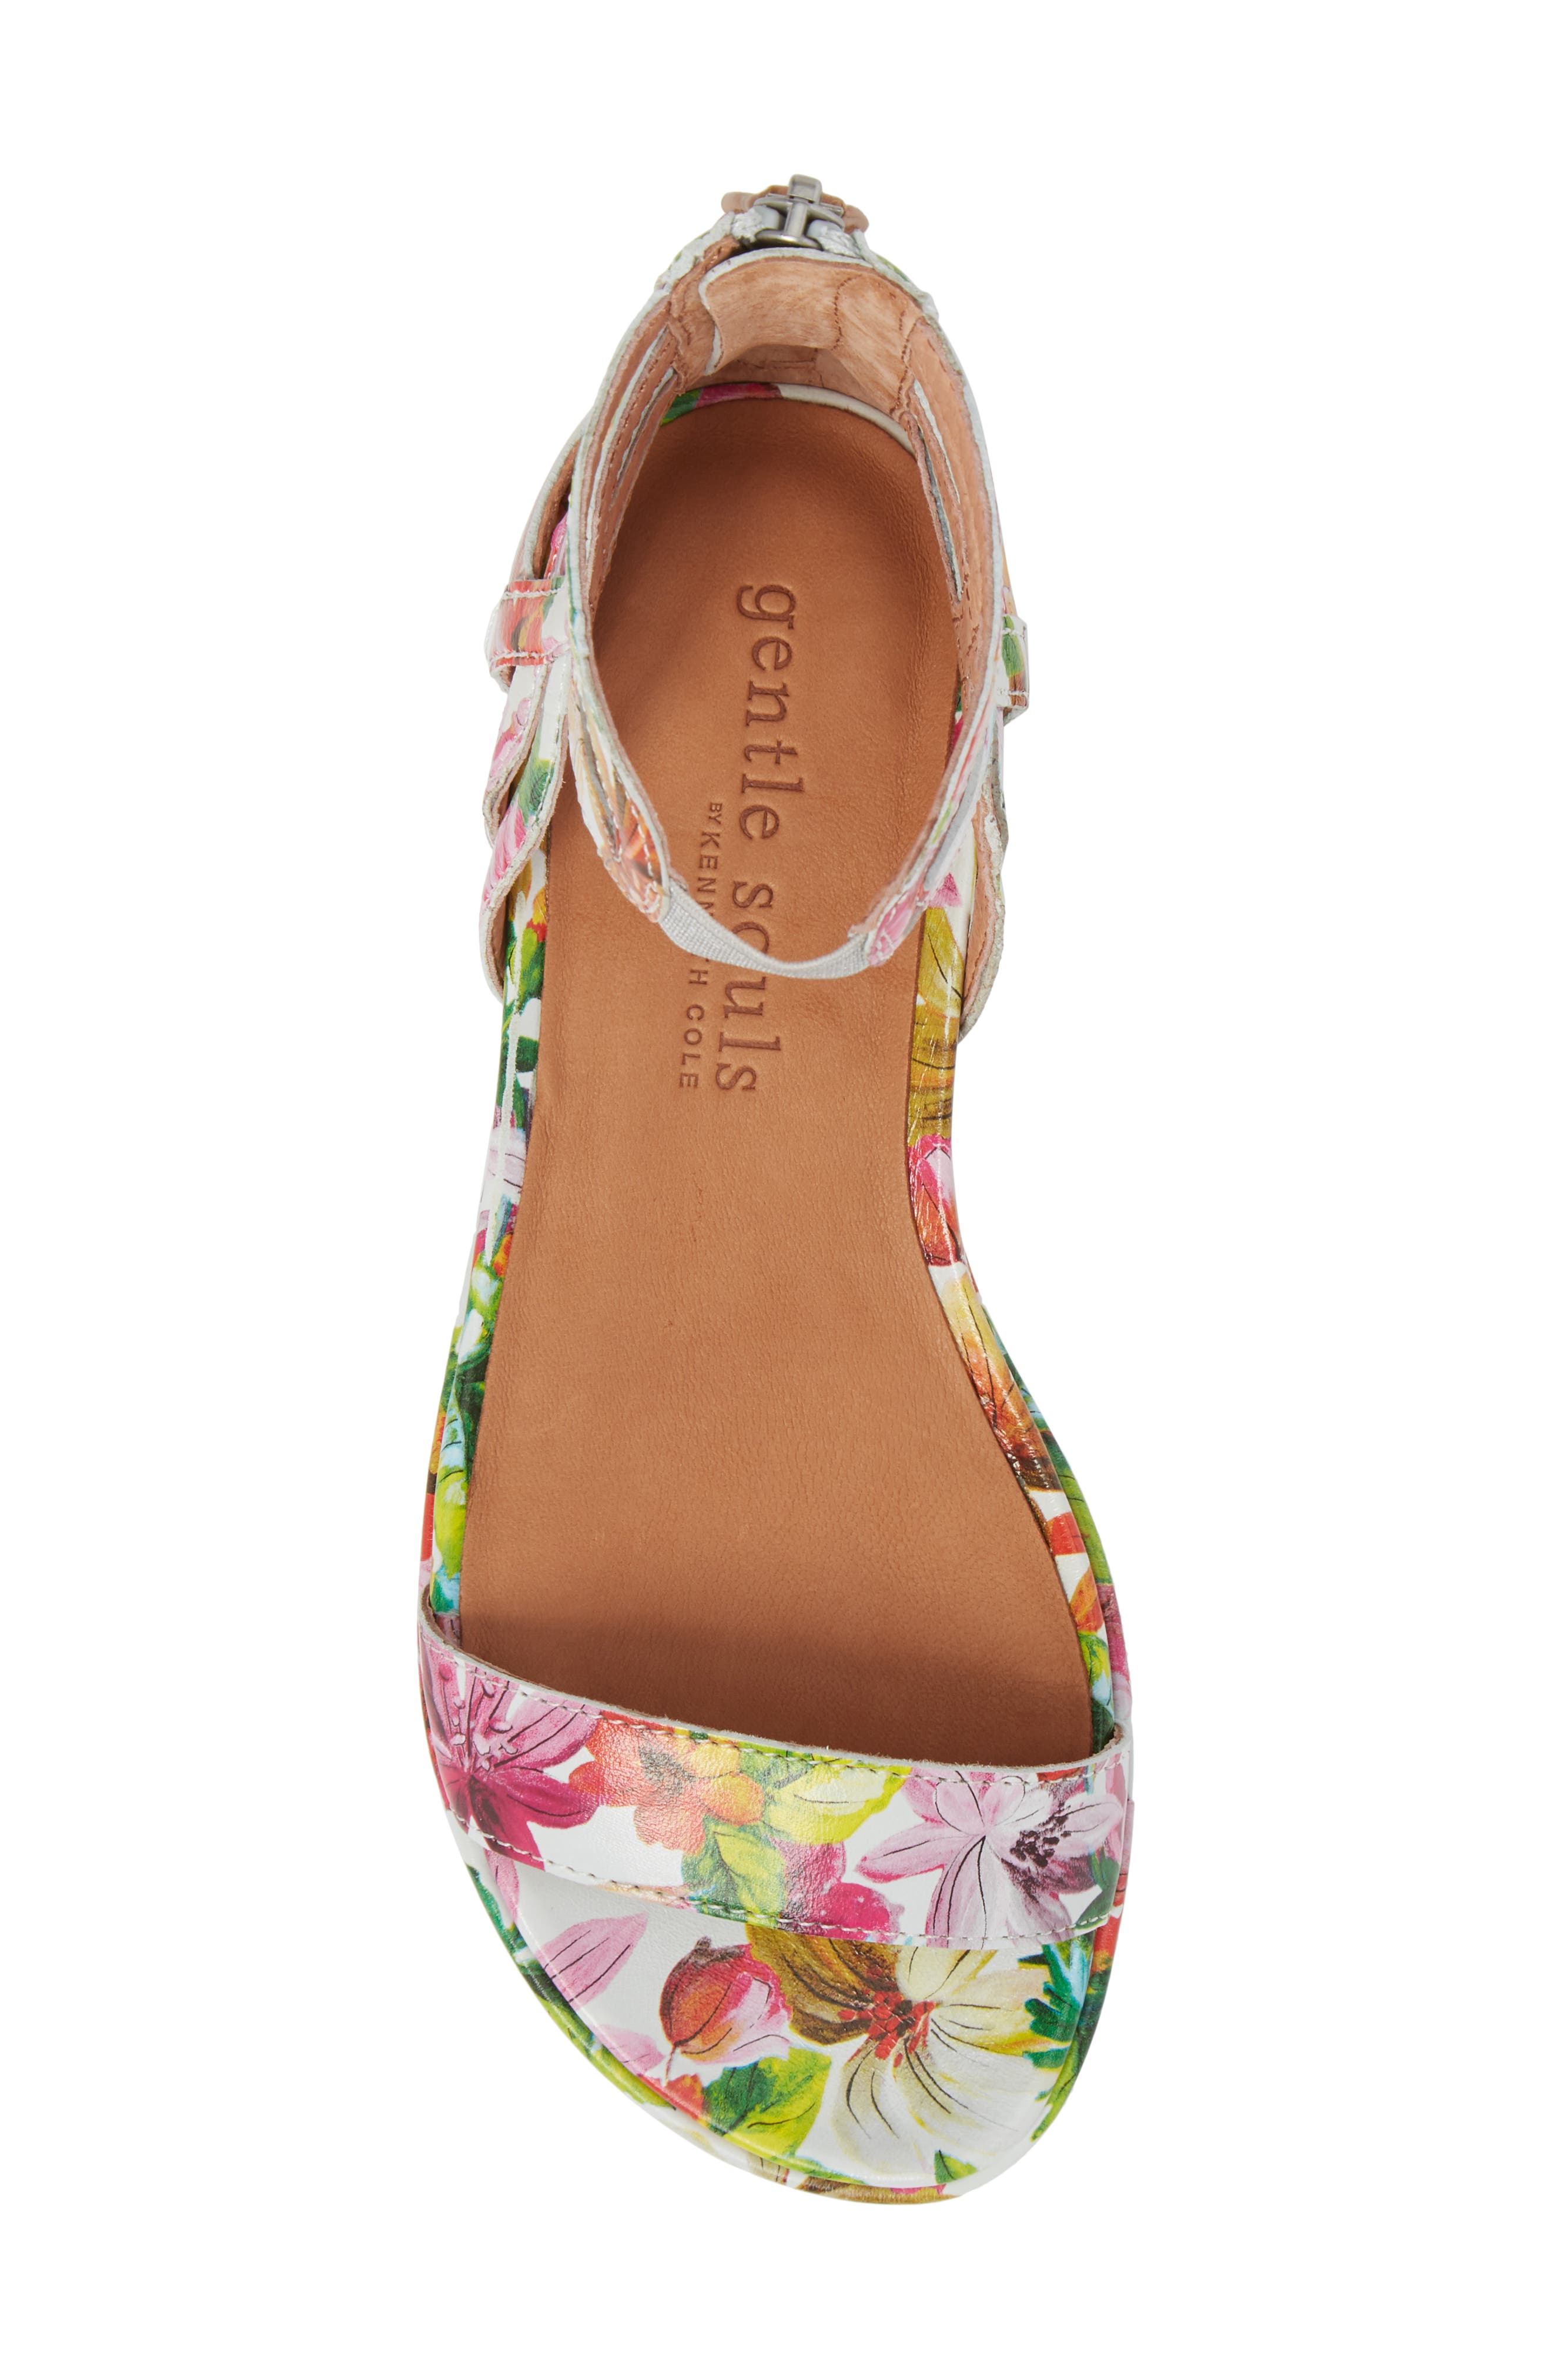 GENTLE SOULS BY KENNETH COLE, Larissa Sandal, Alternate thumbnail 5, color, PALM PRINTED LEATHER